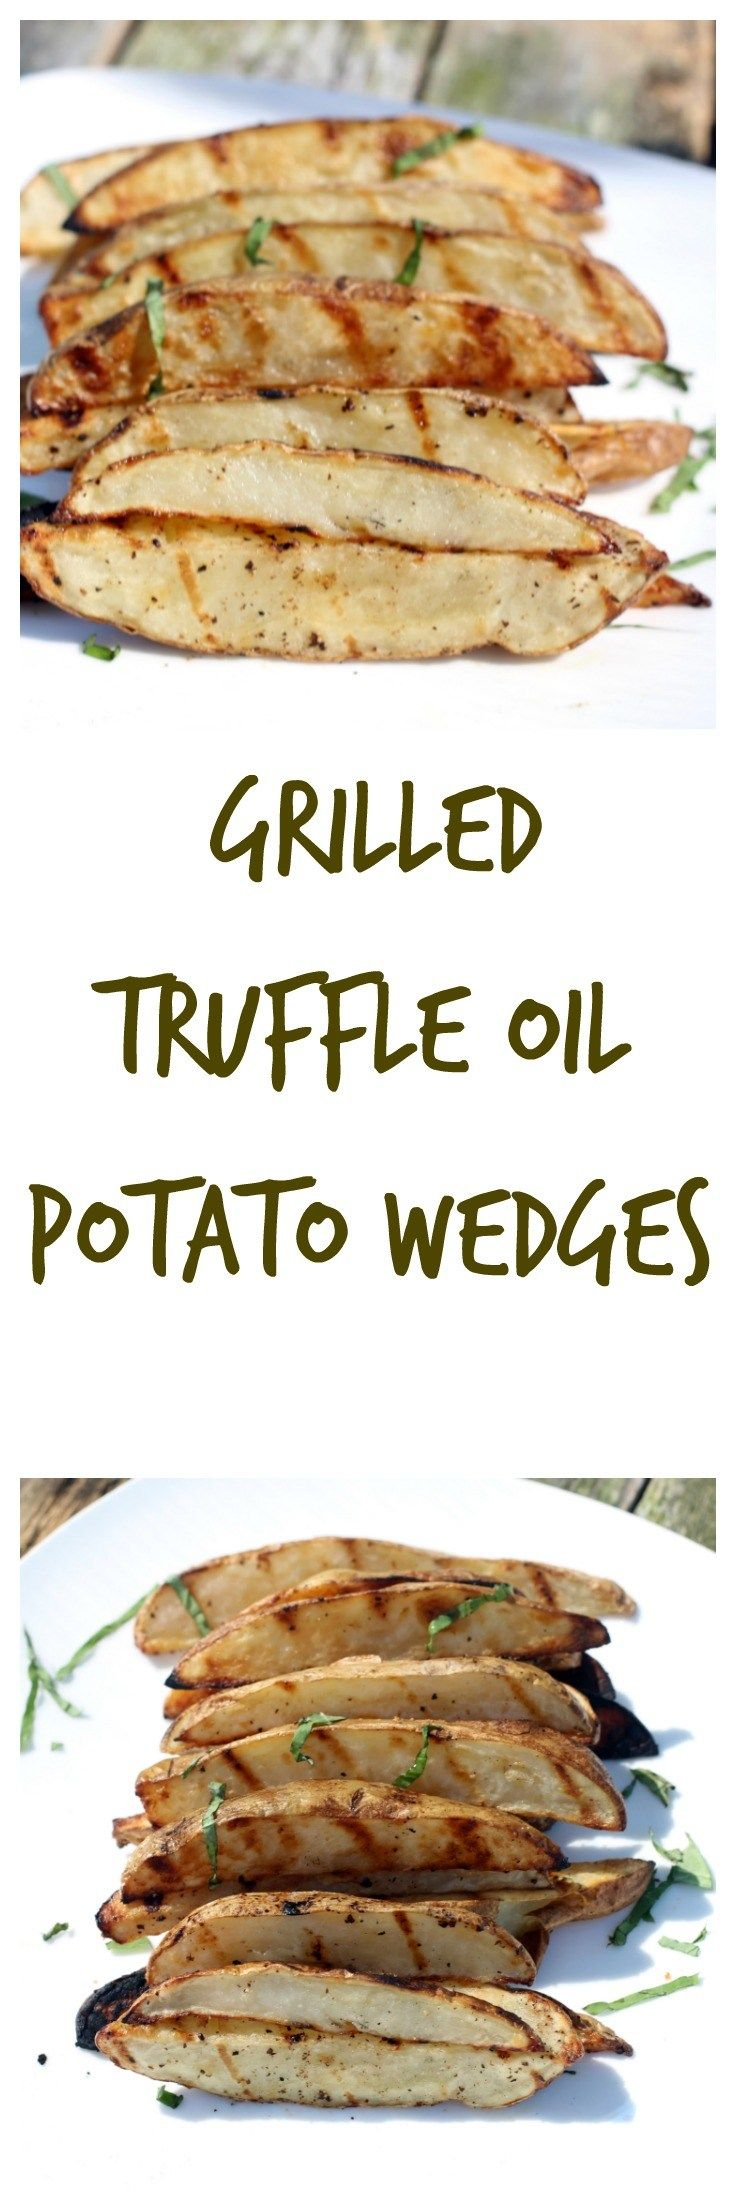 Grilled Truffle Oil Potato Wedges are so easy to  prepare! In less than 15 minutes and only 5 ingredients Grilled Truffle Oil Potato Wedges are ready! Great side dish! #CookoutWeek